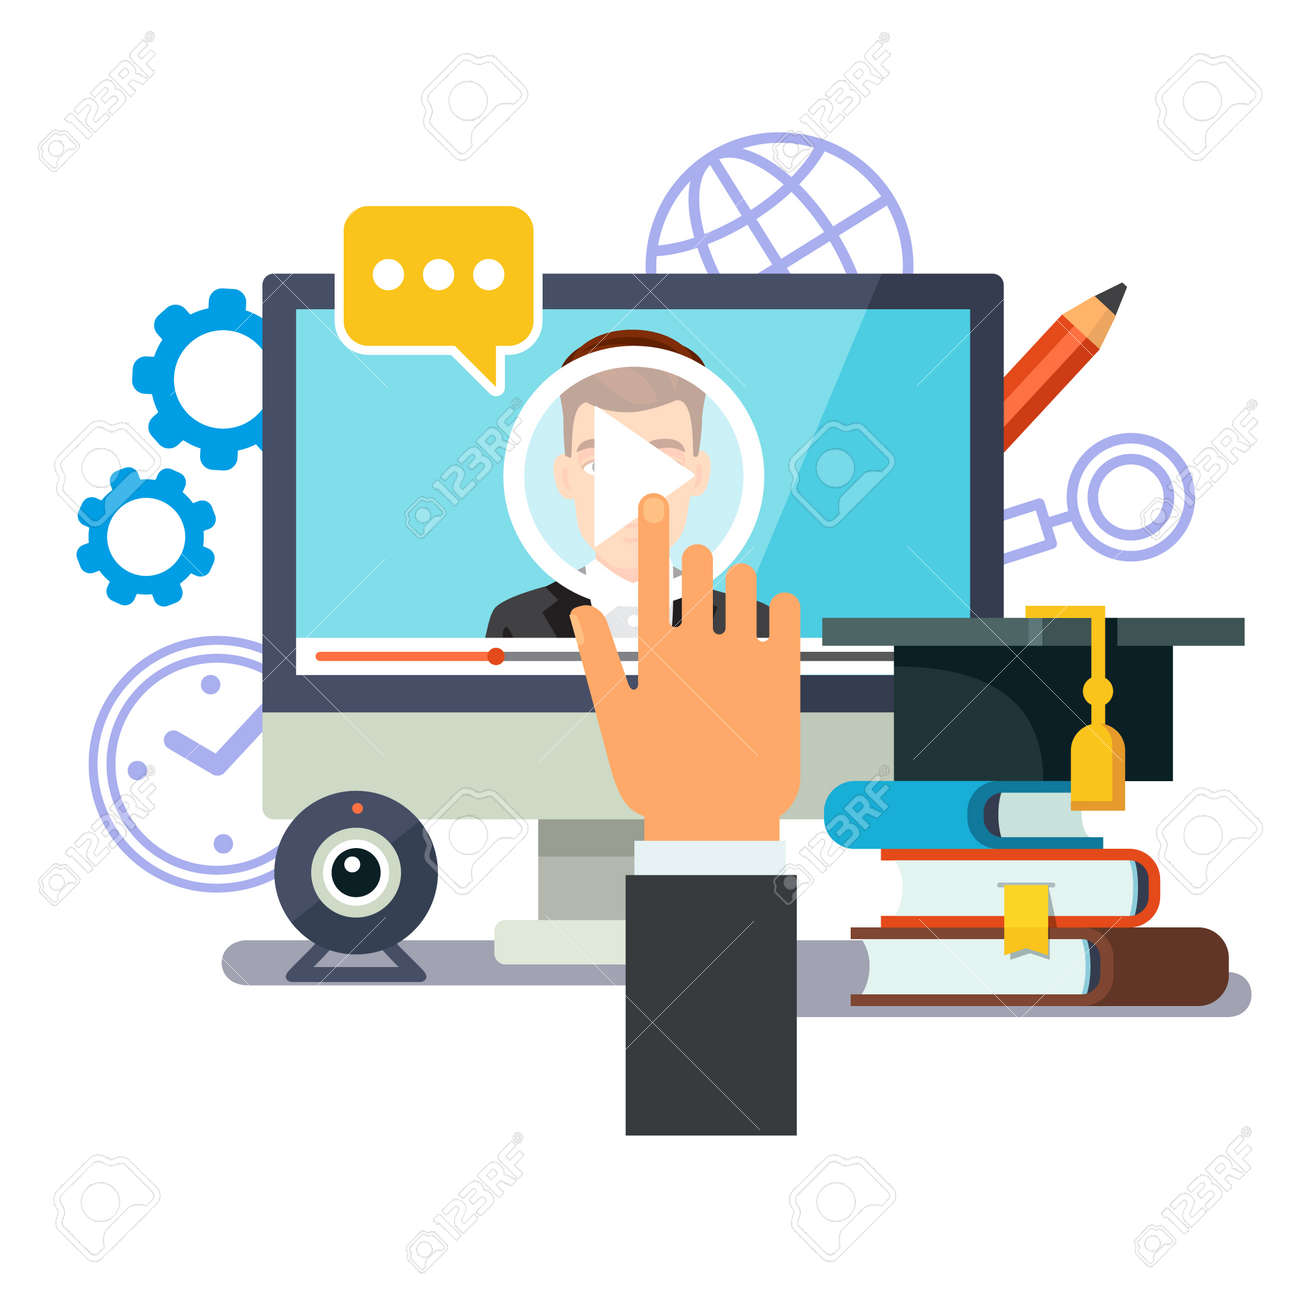 Online education and graduation. Webinar and video seminar learning concept. Businessman hand touching screen with lecture media. Flat style vector illustration isolated on white background. - 46168022